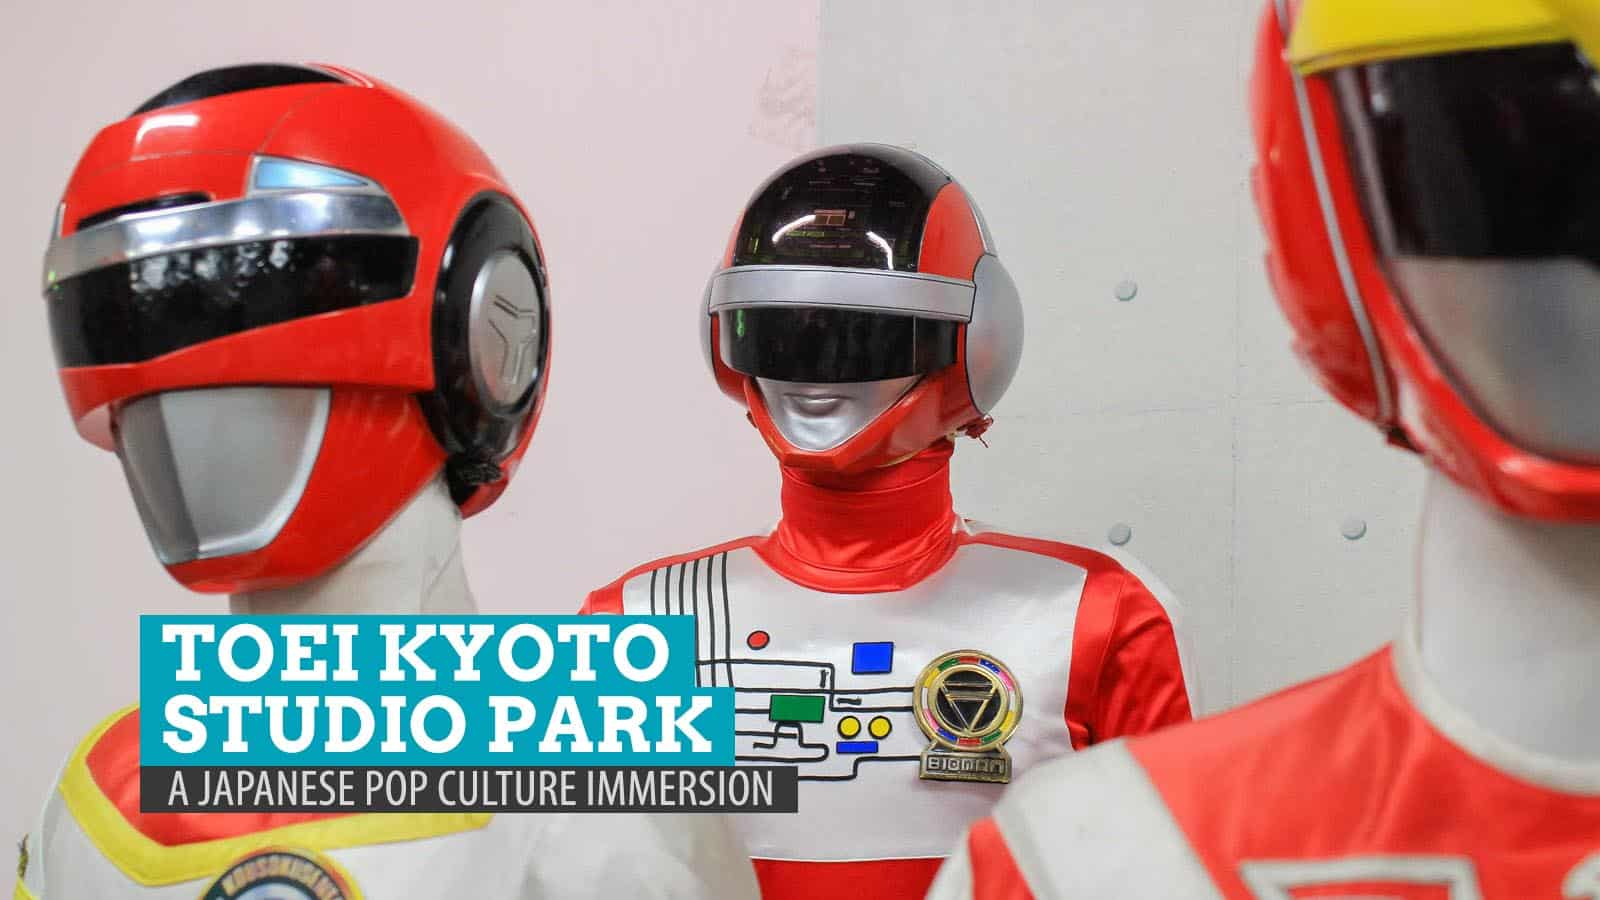 TOEI KYOTO STUDIO PARK: Best Attractions & How to Get There